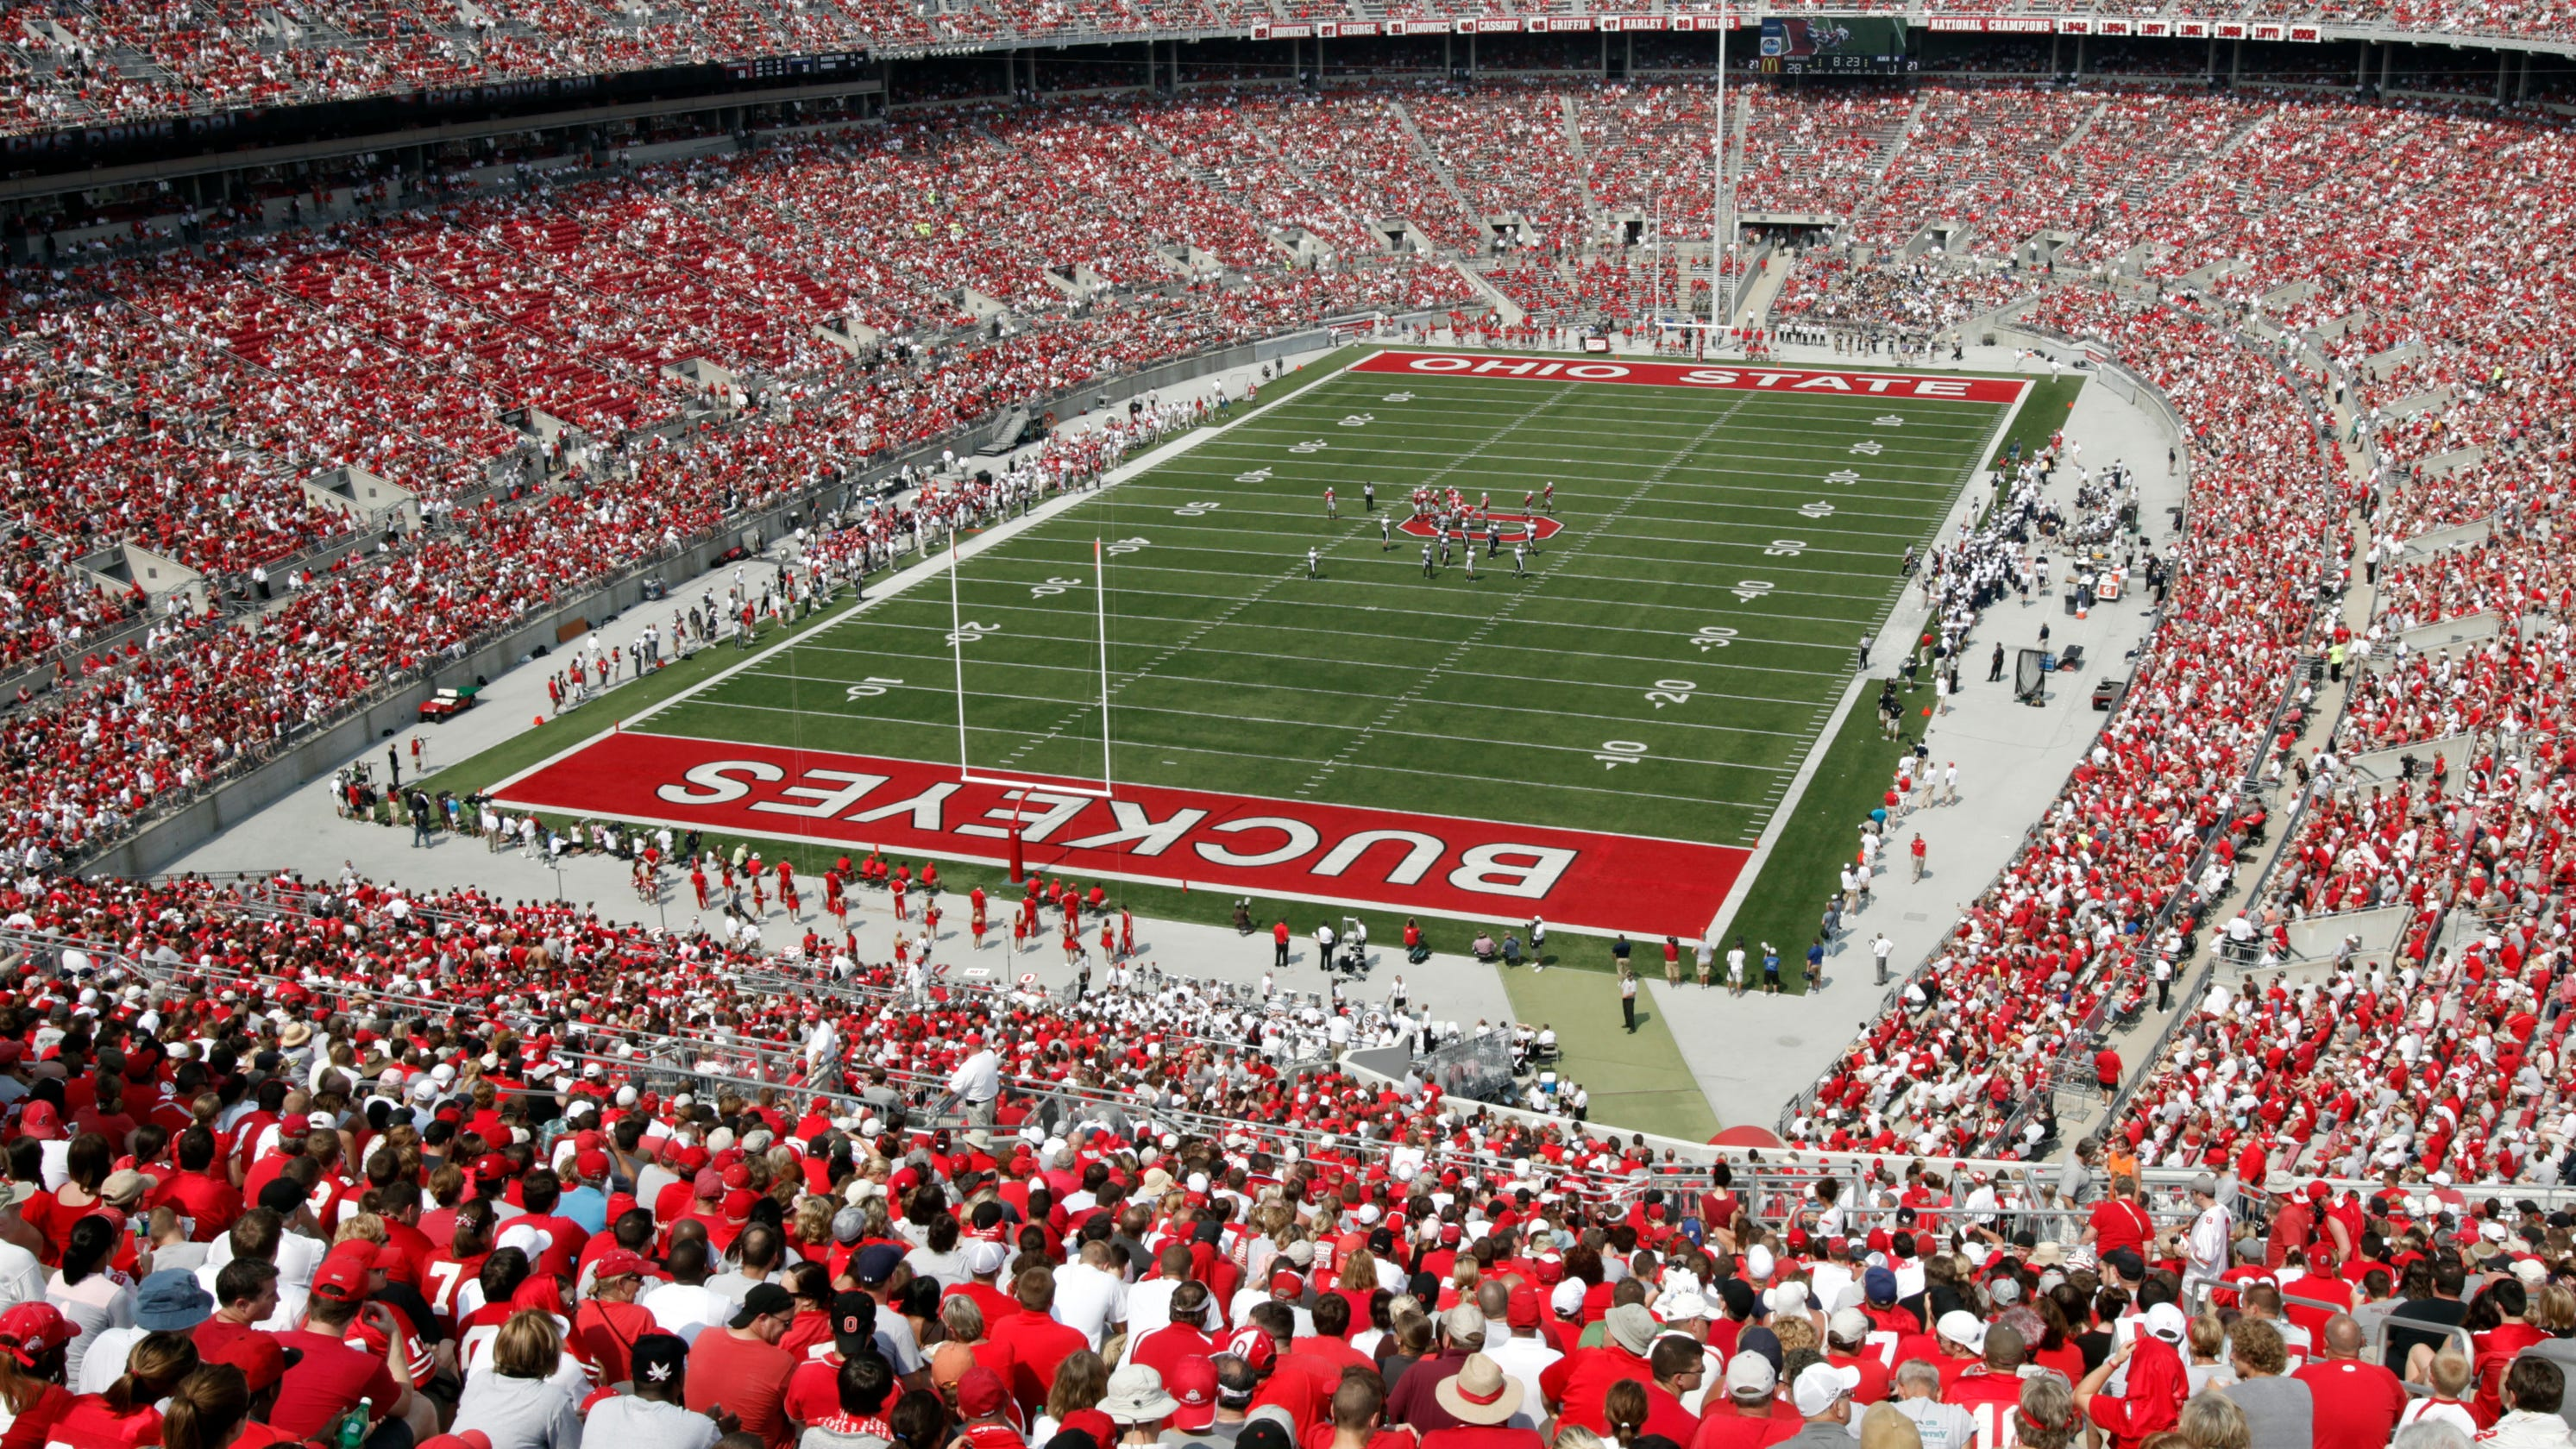 College football tries to devise safe ticketing policy for COVID-19